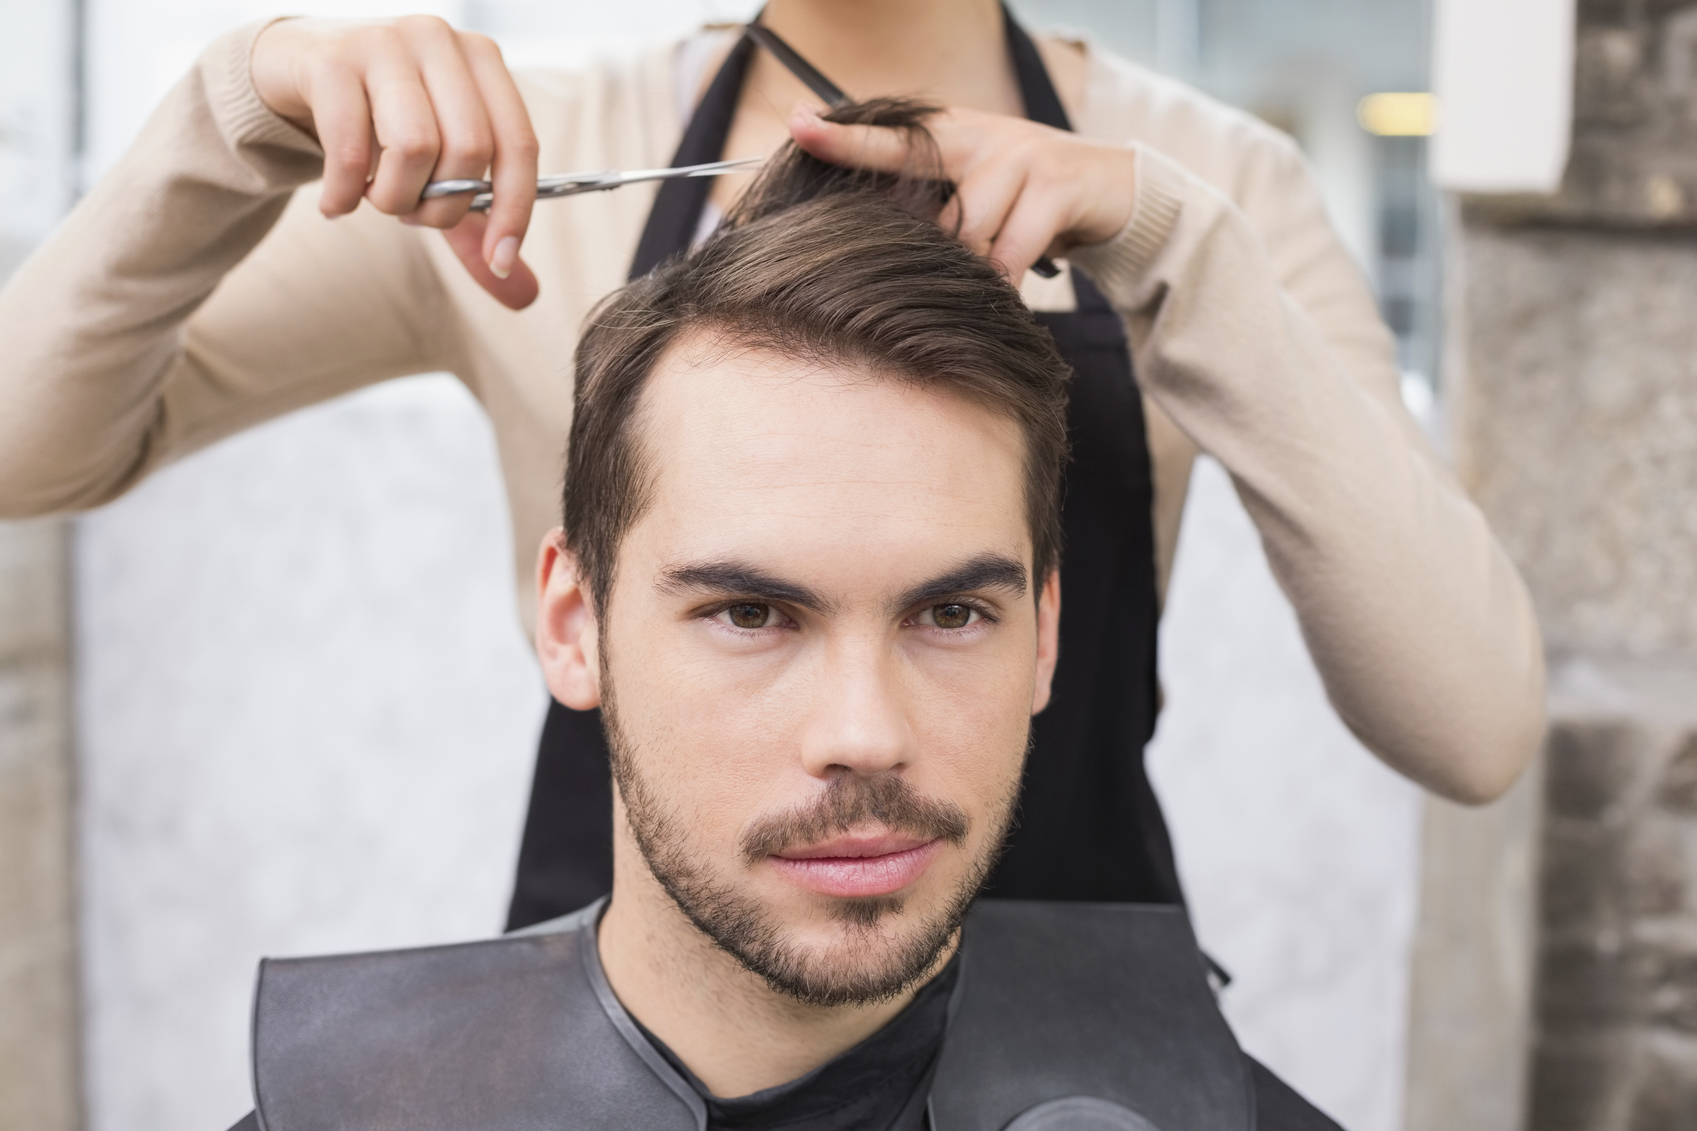 Man getting his hair trimmed